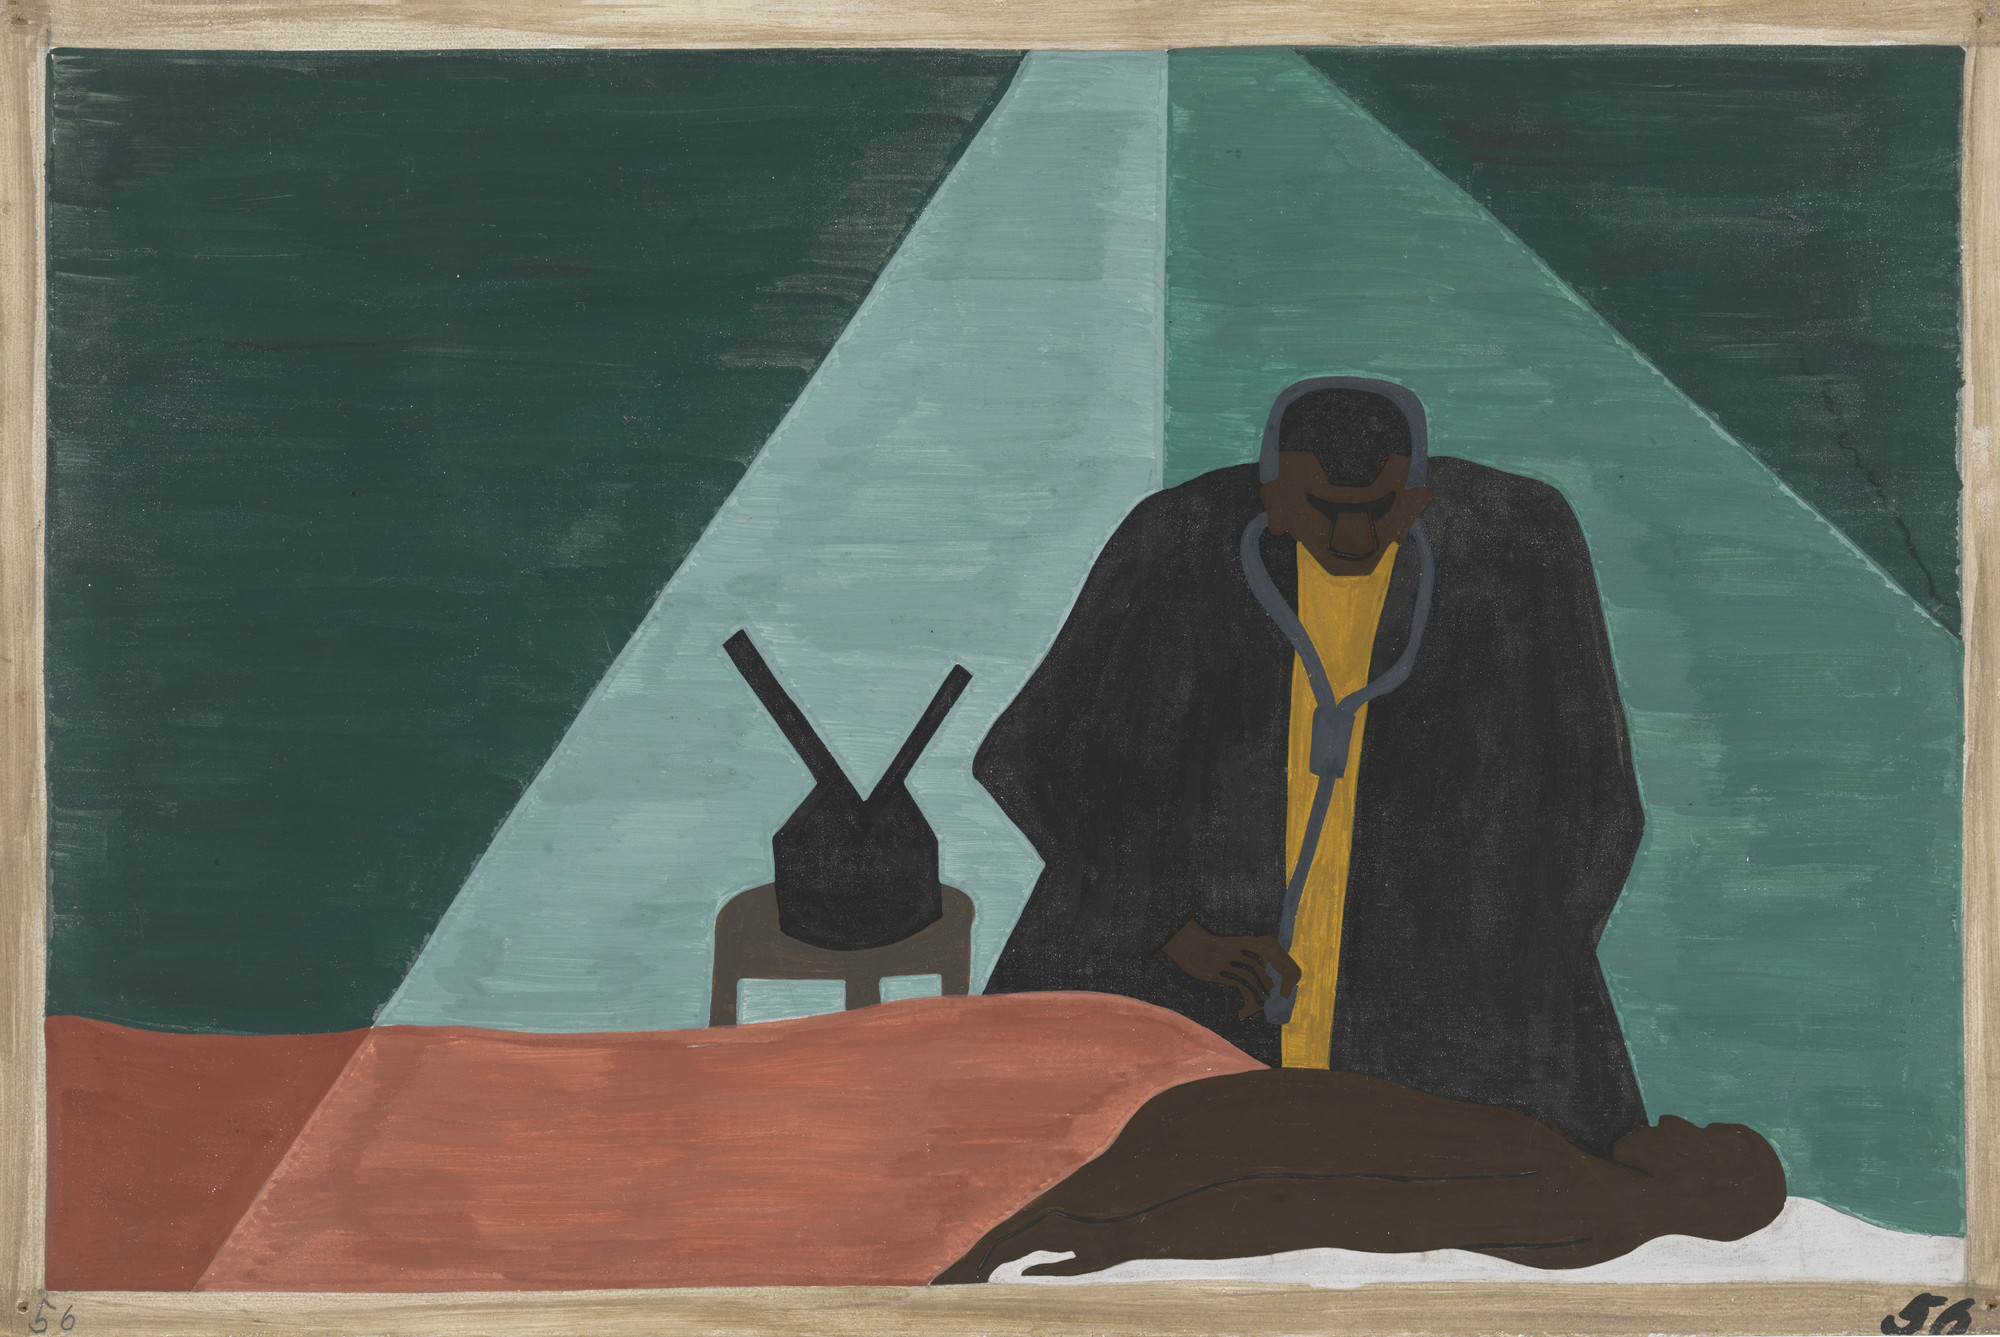 Jacob Lawrence. Among one of the last groups to leave the South was the Negro professional who was forced to follow his clientele to make a living. 1940-41